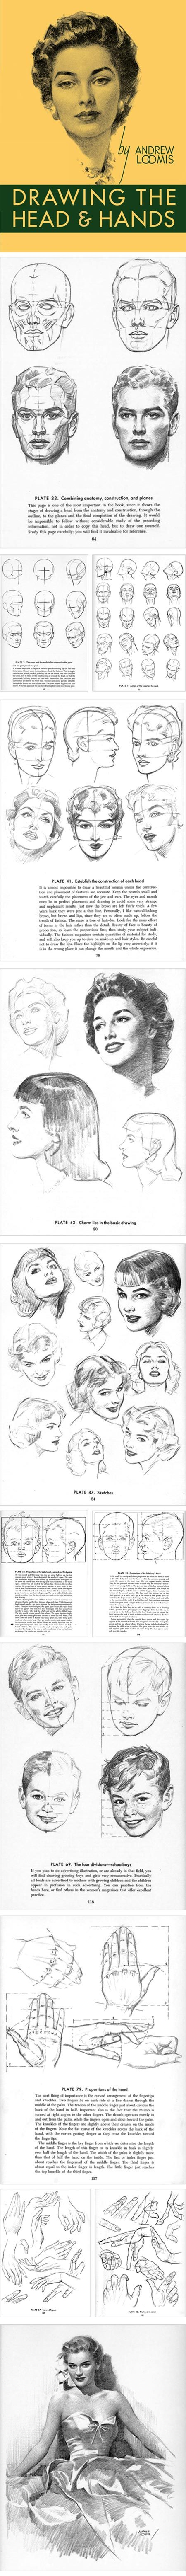 lines and colors :: a blog about drawing, painting, illustration, comics, concept art and other visual arts » Drawing the Head and Hands, Andrew Loomis: